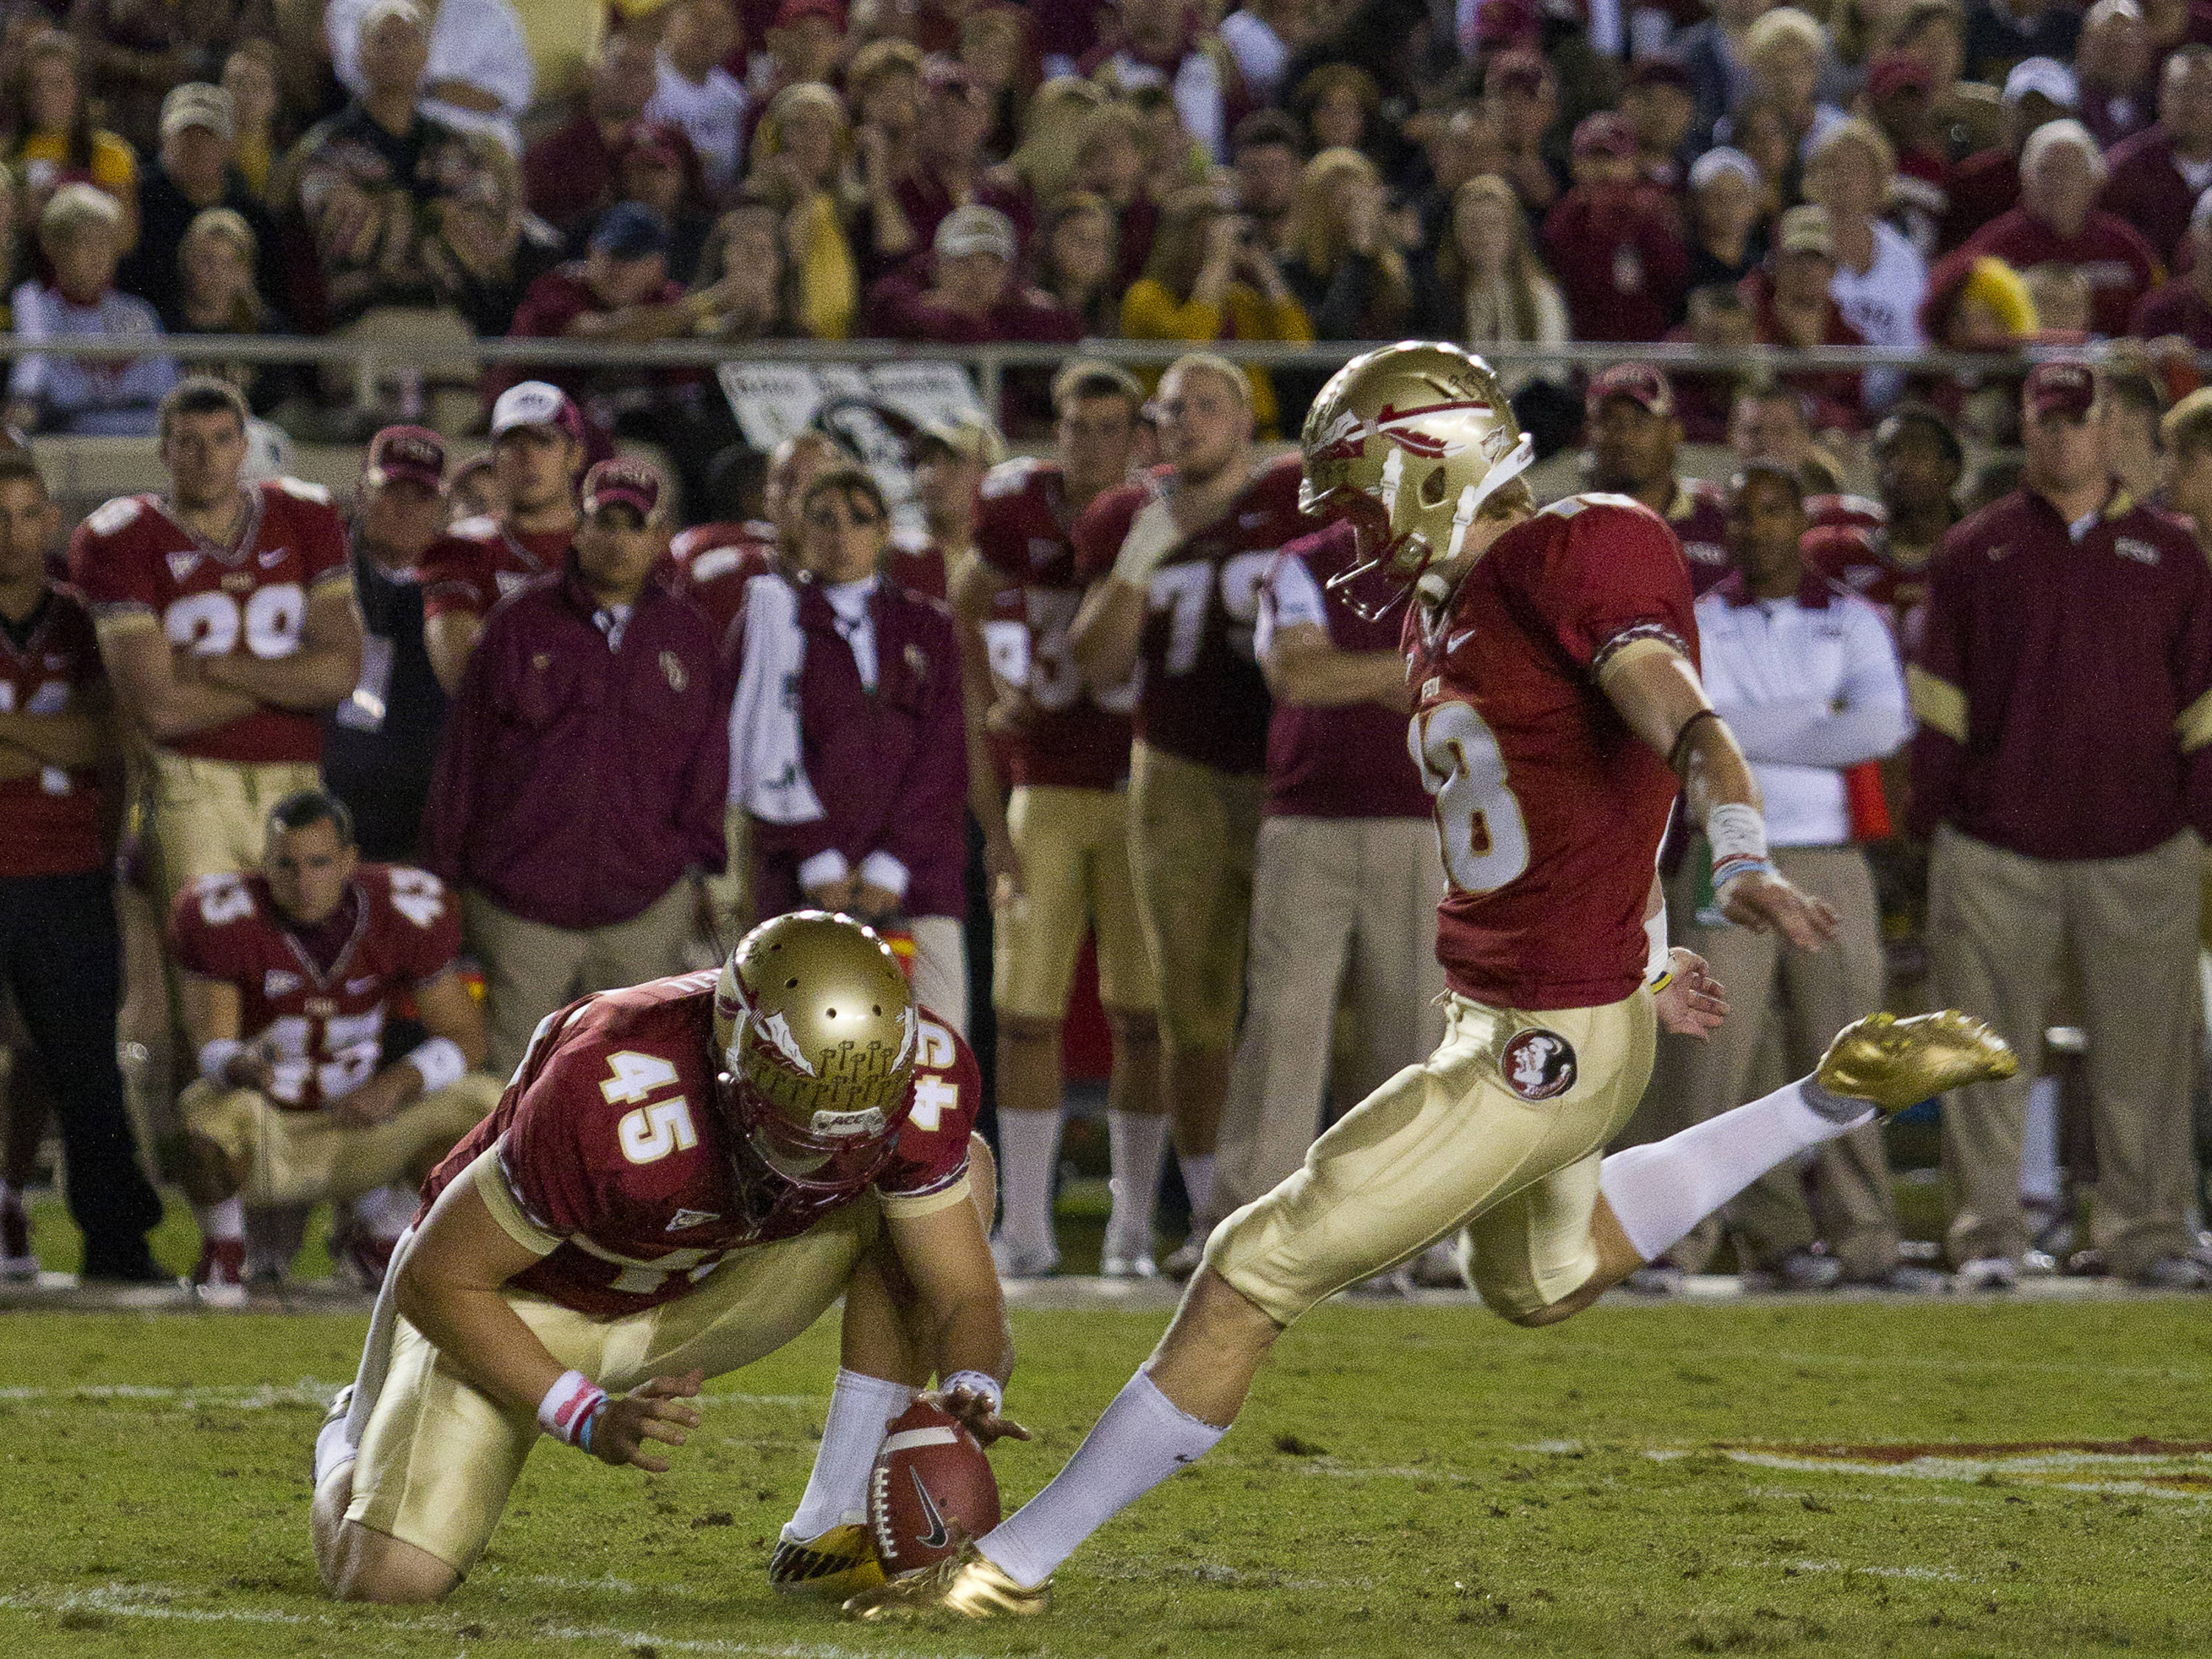 Dustin Hopkins (18) makes a 26 yard field goal with 54 seconds left before half-time of the game against Virginia on November 19, 2011.